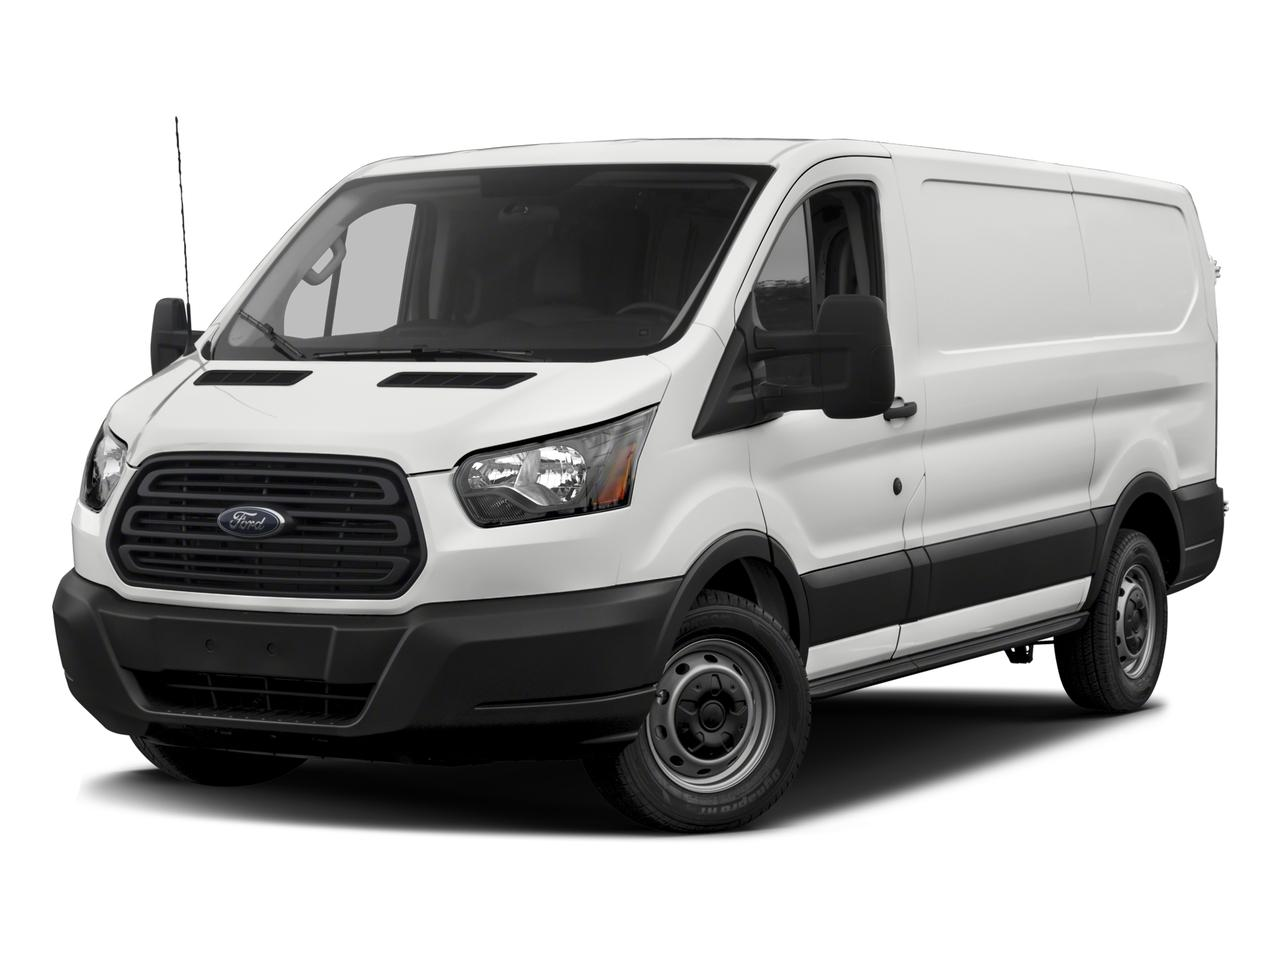 2017 Ford Transit Van Vehicle Photo in Rockville, MD 20852